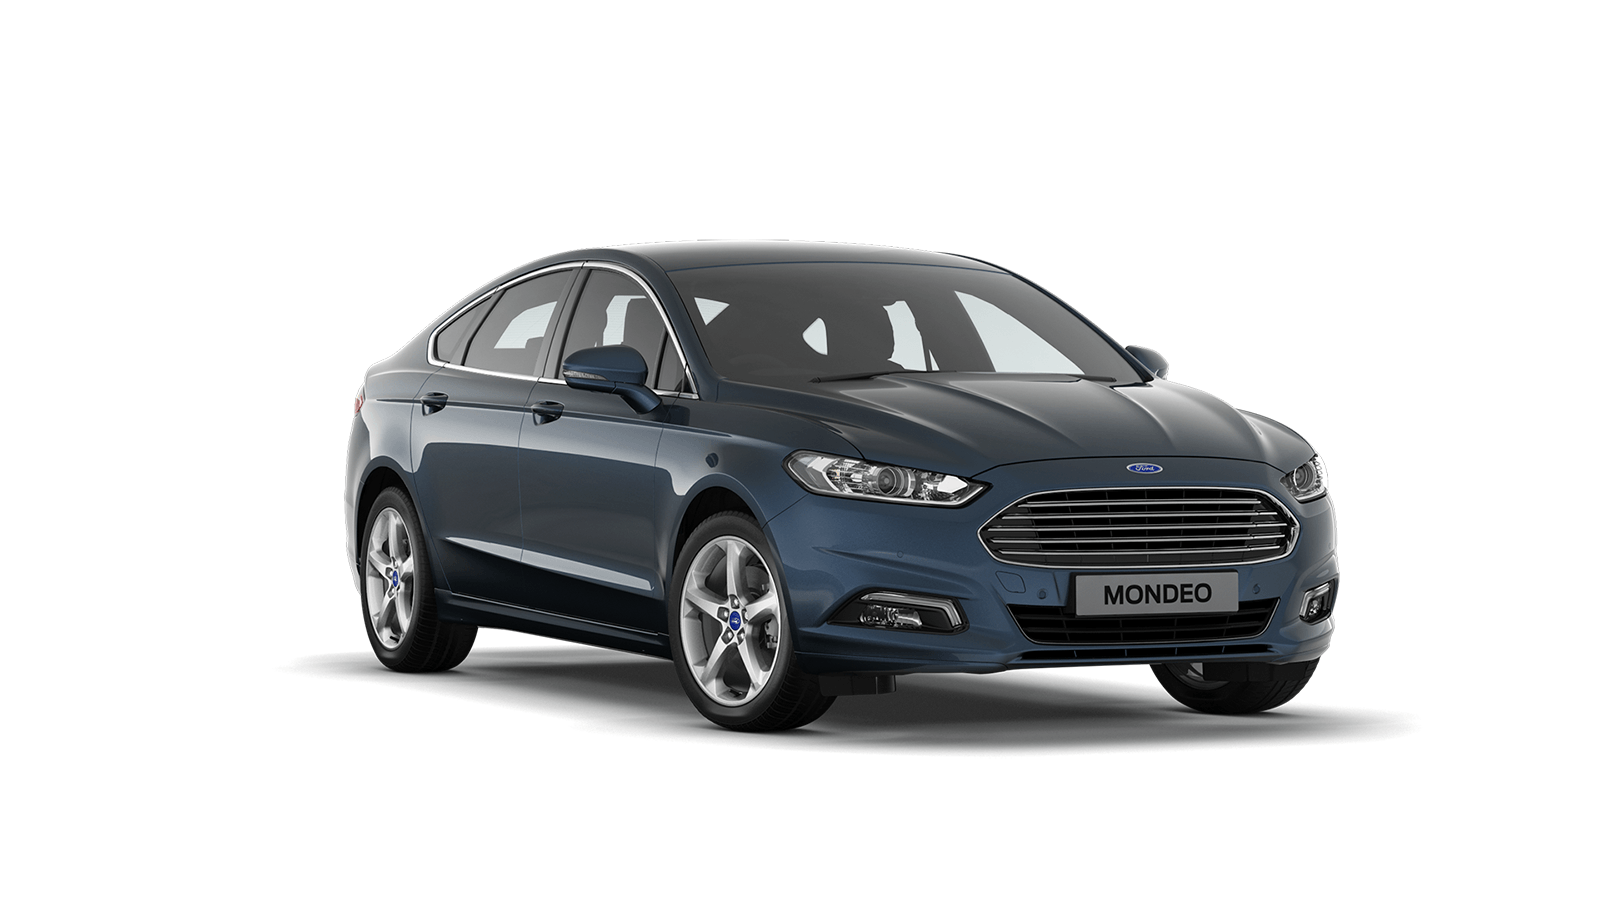 Ford Mondeo Titanium Edition 2.0 TDCi 150PS at Browne & Day